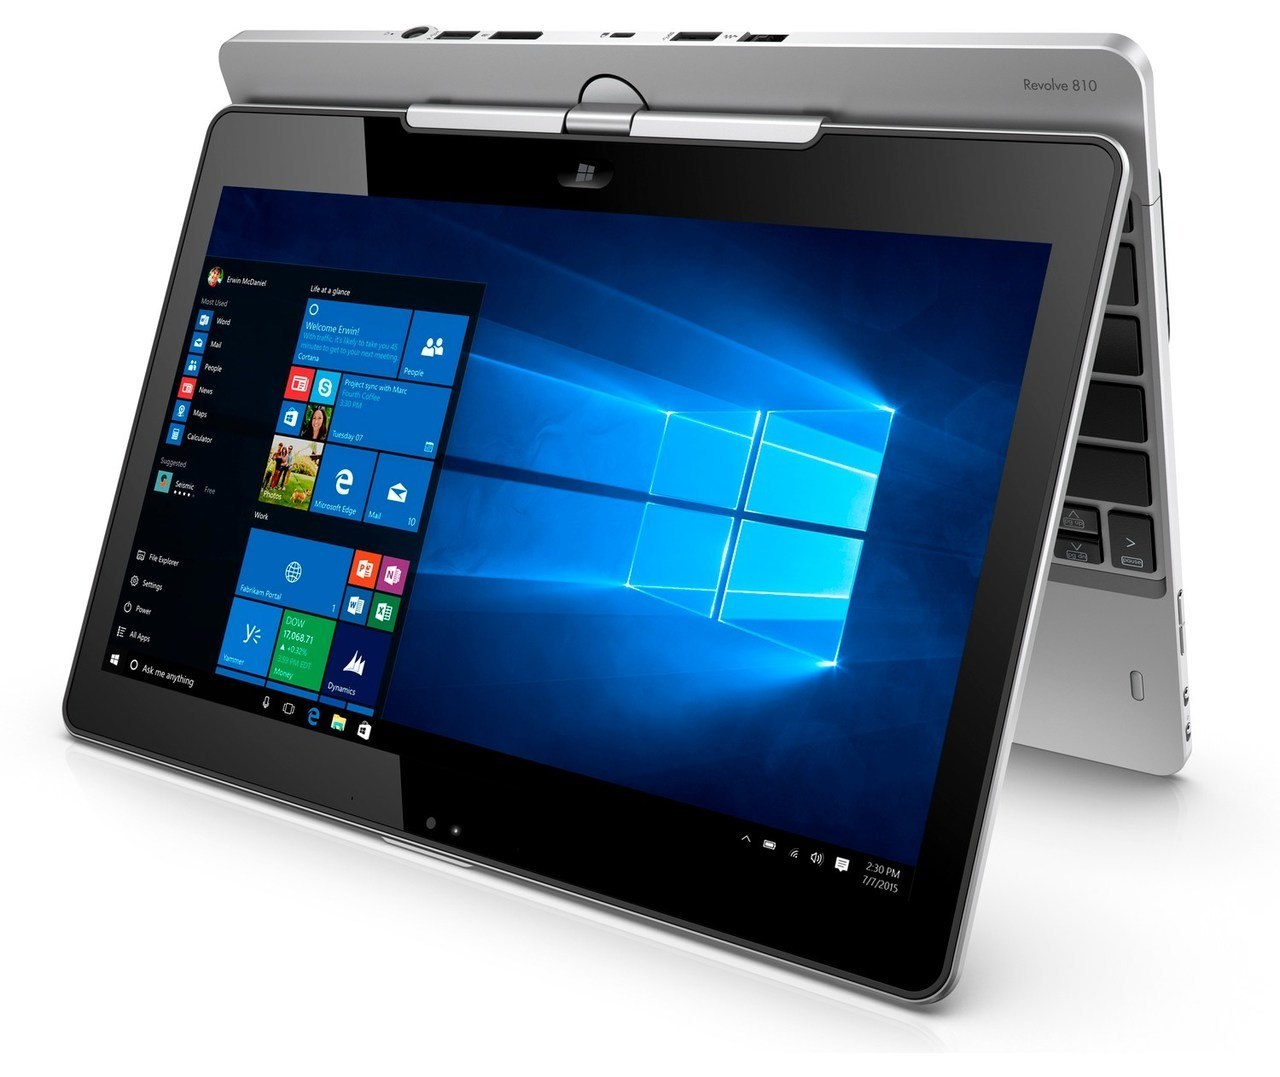 HP EliteBook Revolve 810 G3 Base Model Tablet